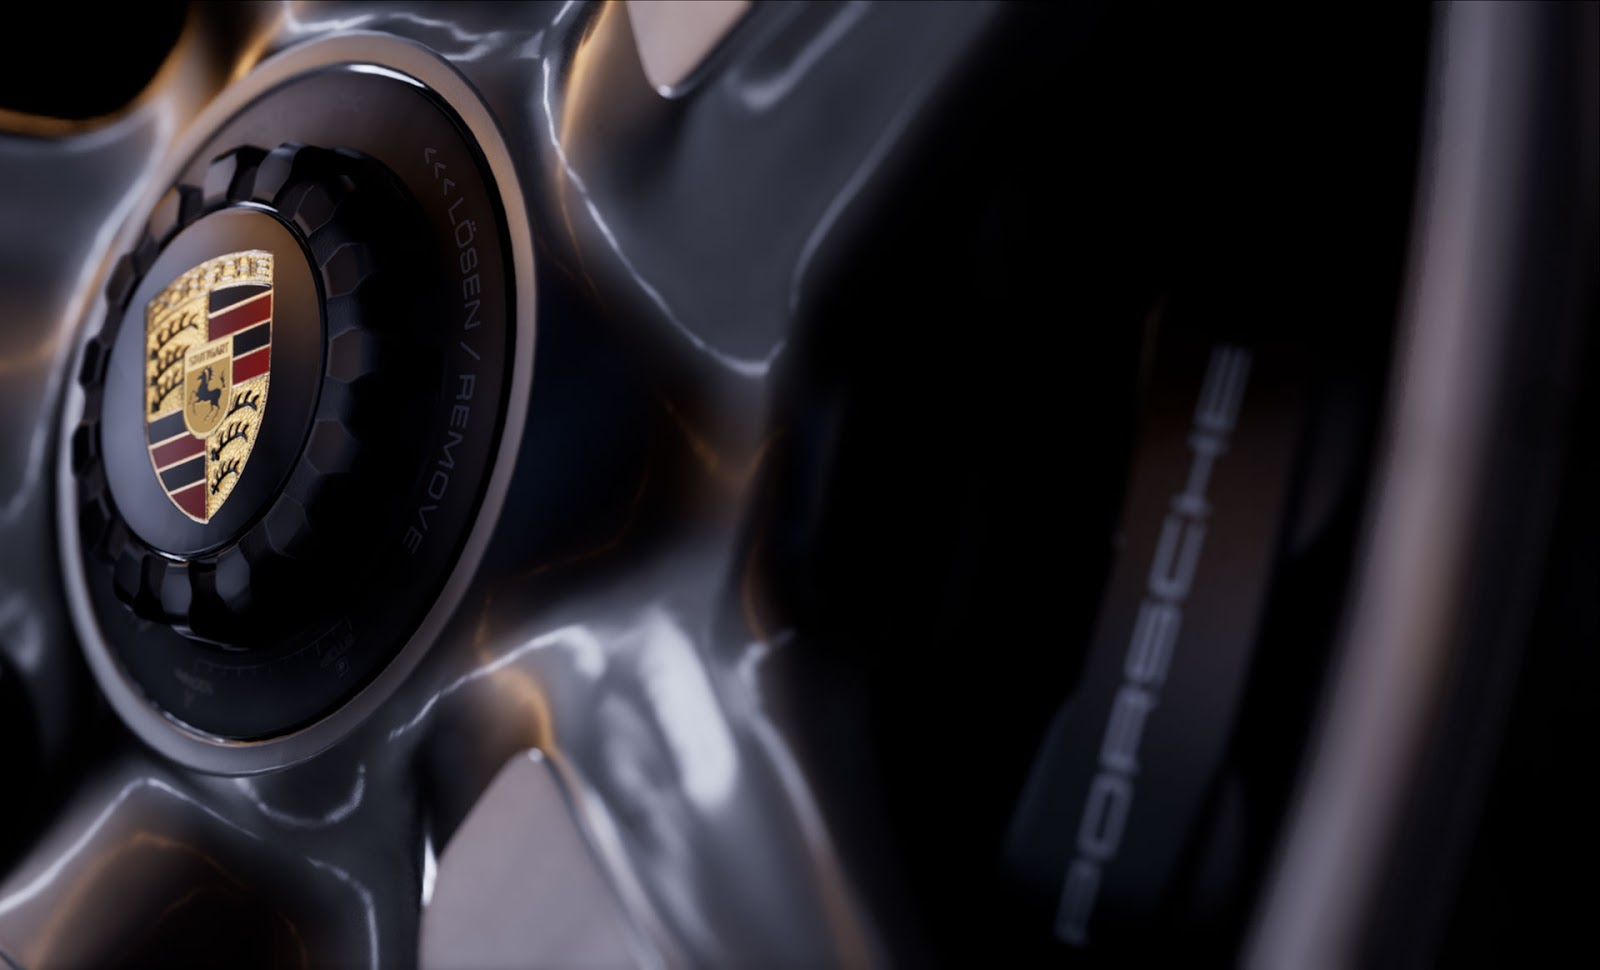 NVIDIA RTX technology in Unreal Engine 'The Speed of Light' for